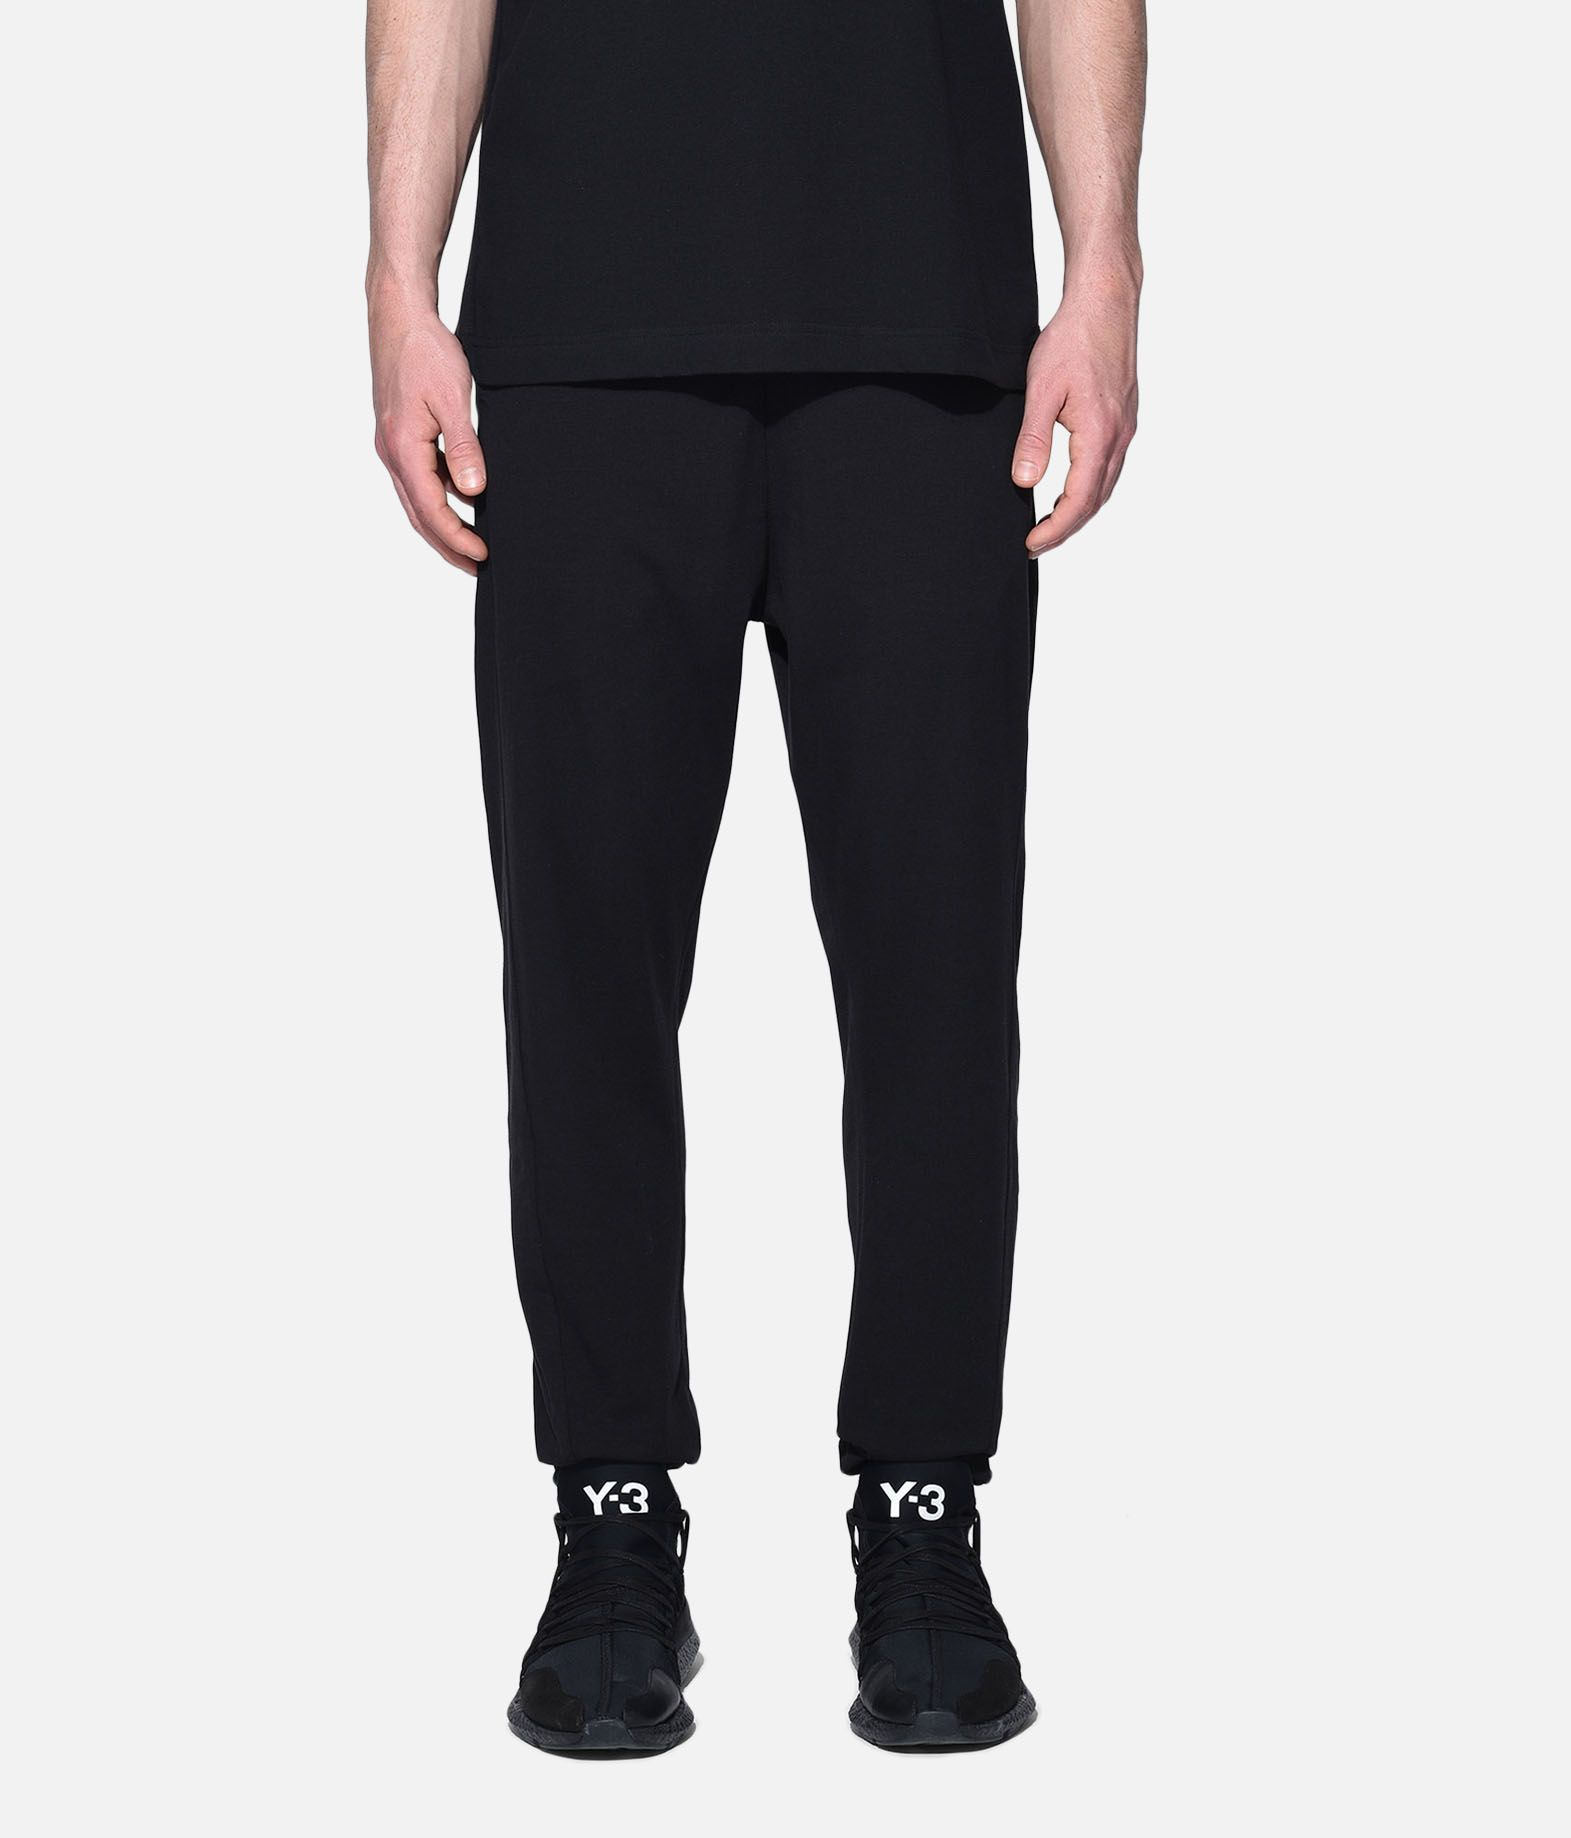 Y-3 Y-3 Logo Long John Pants Leggings Man r